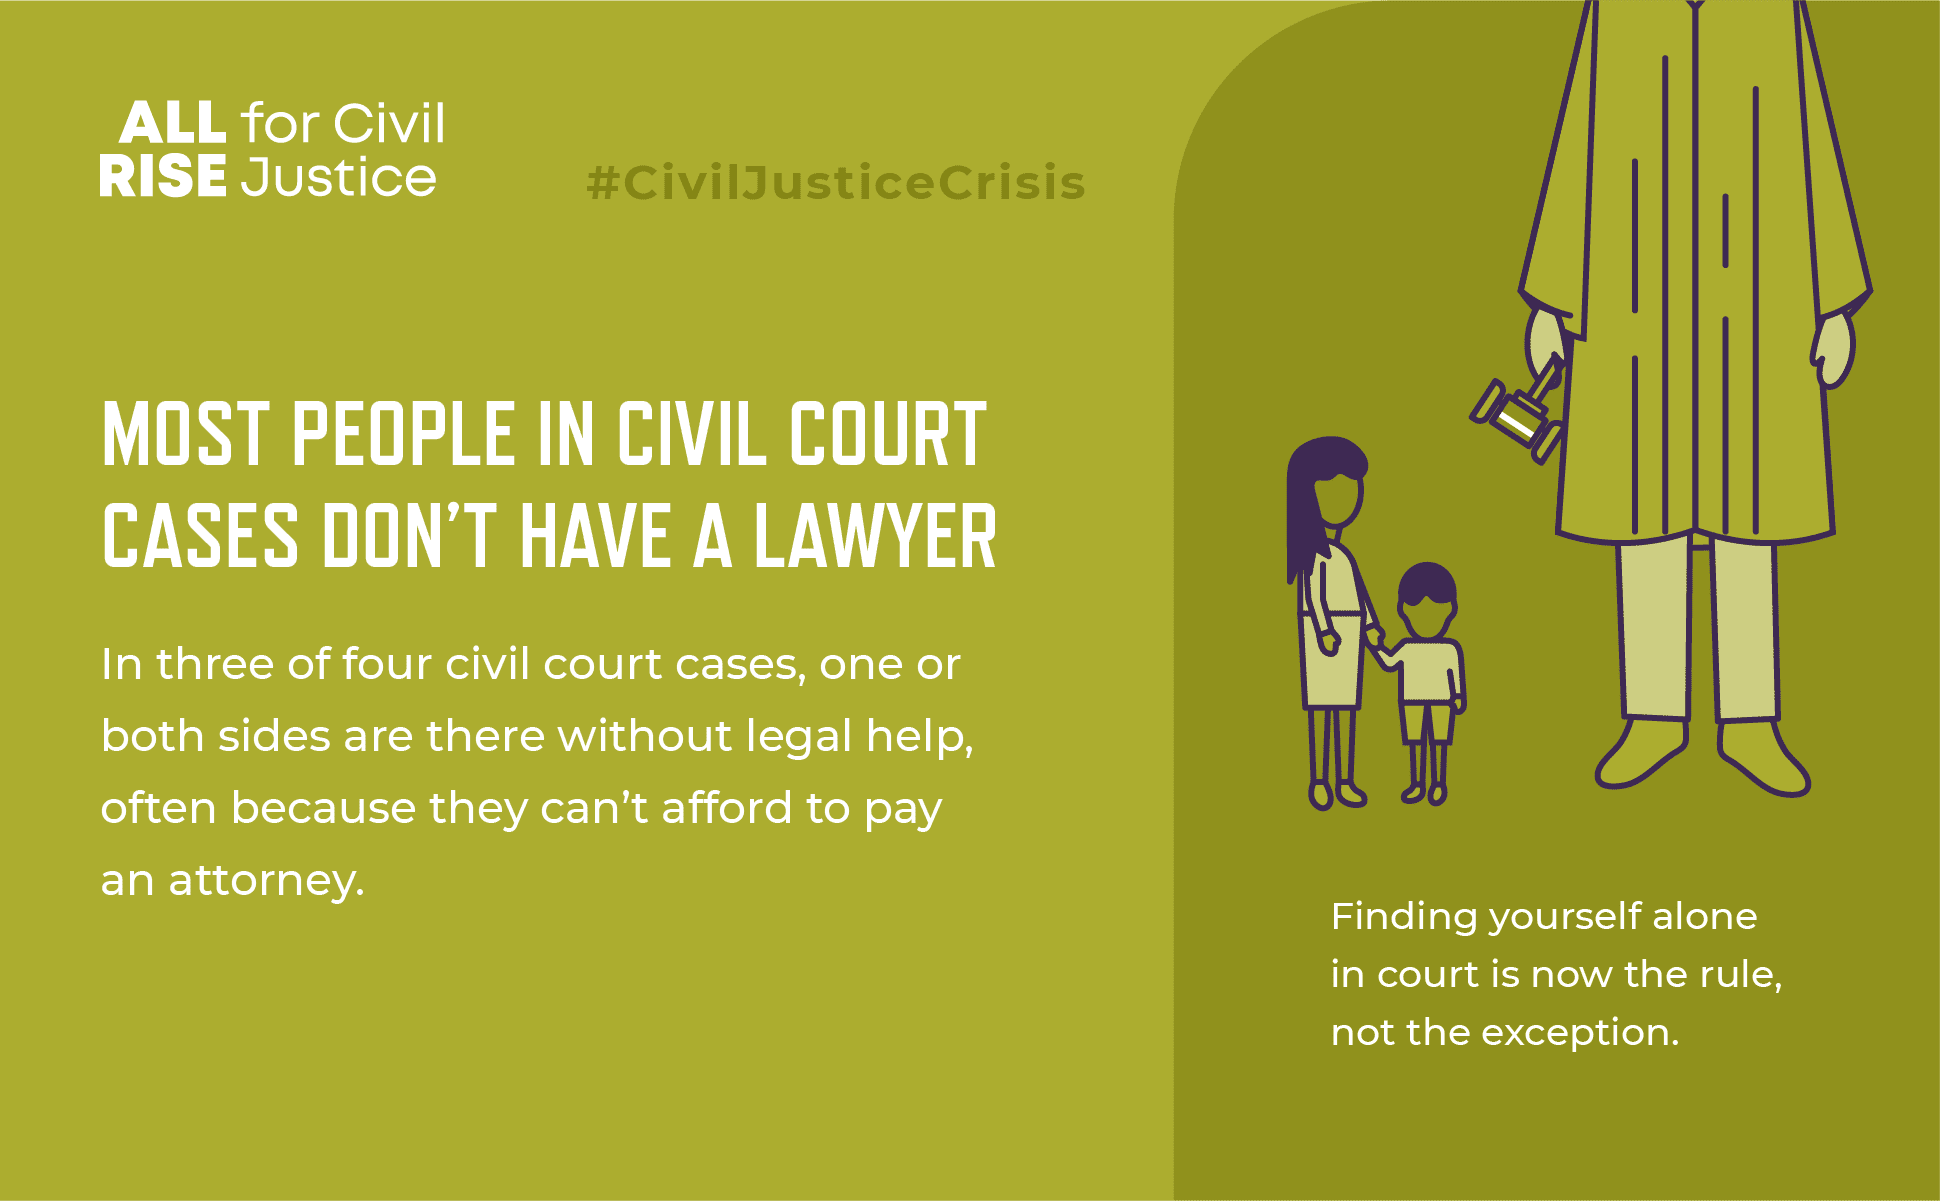 Most people in civil court cases don't have a lawyer.